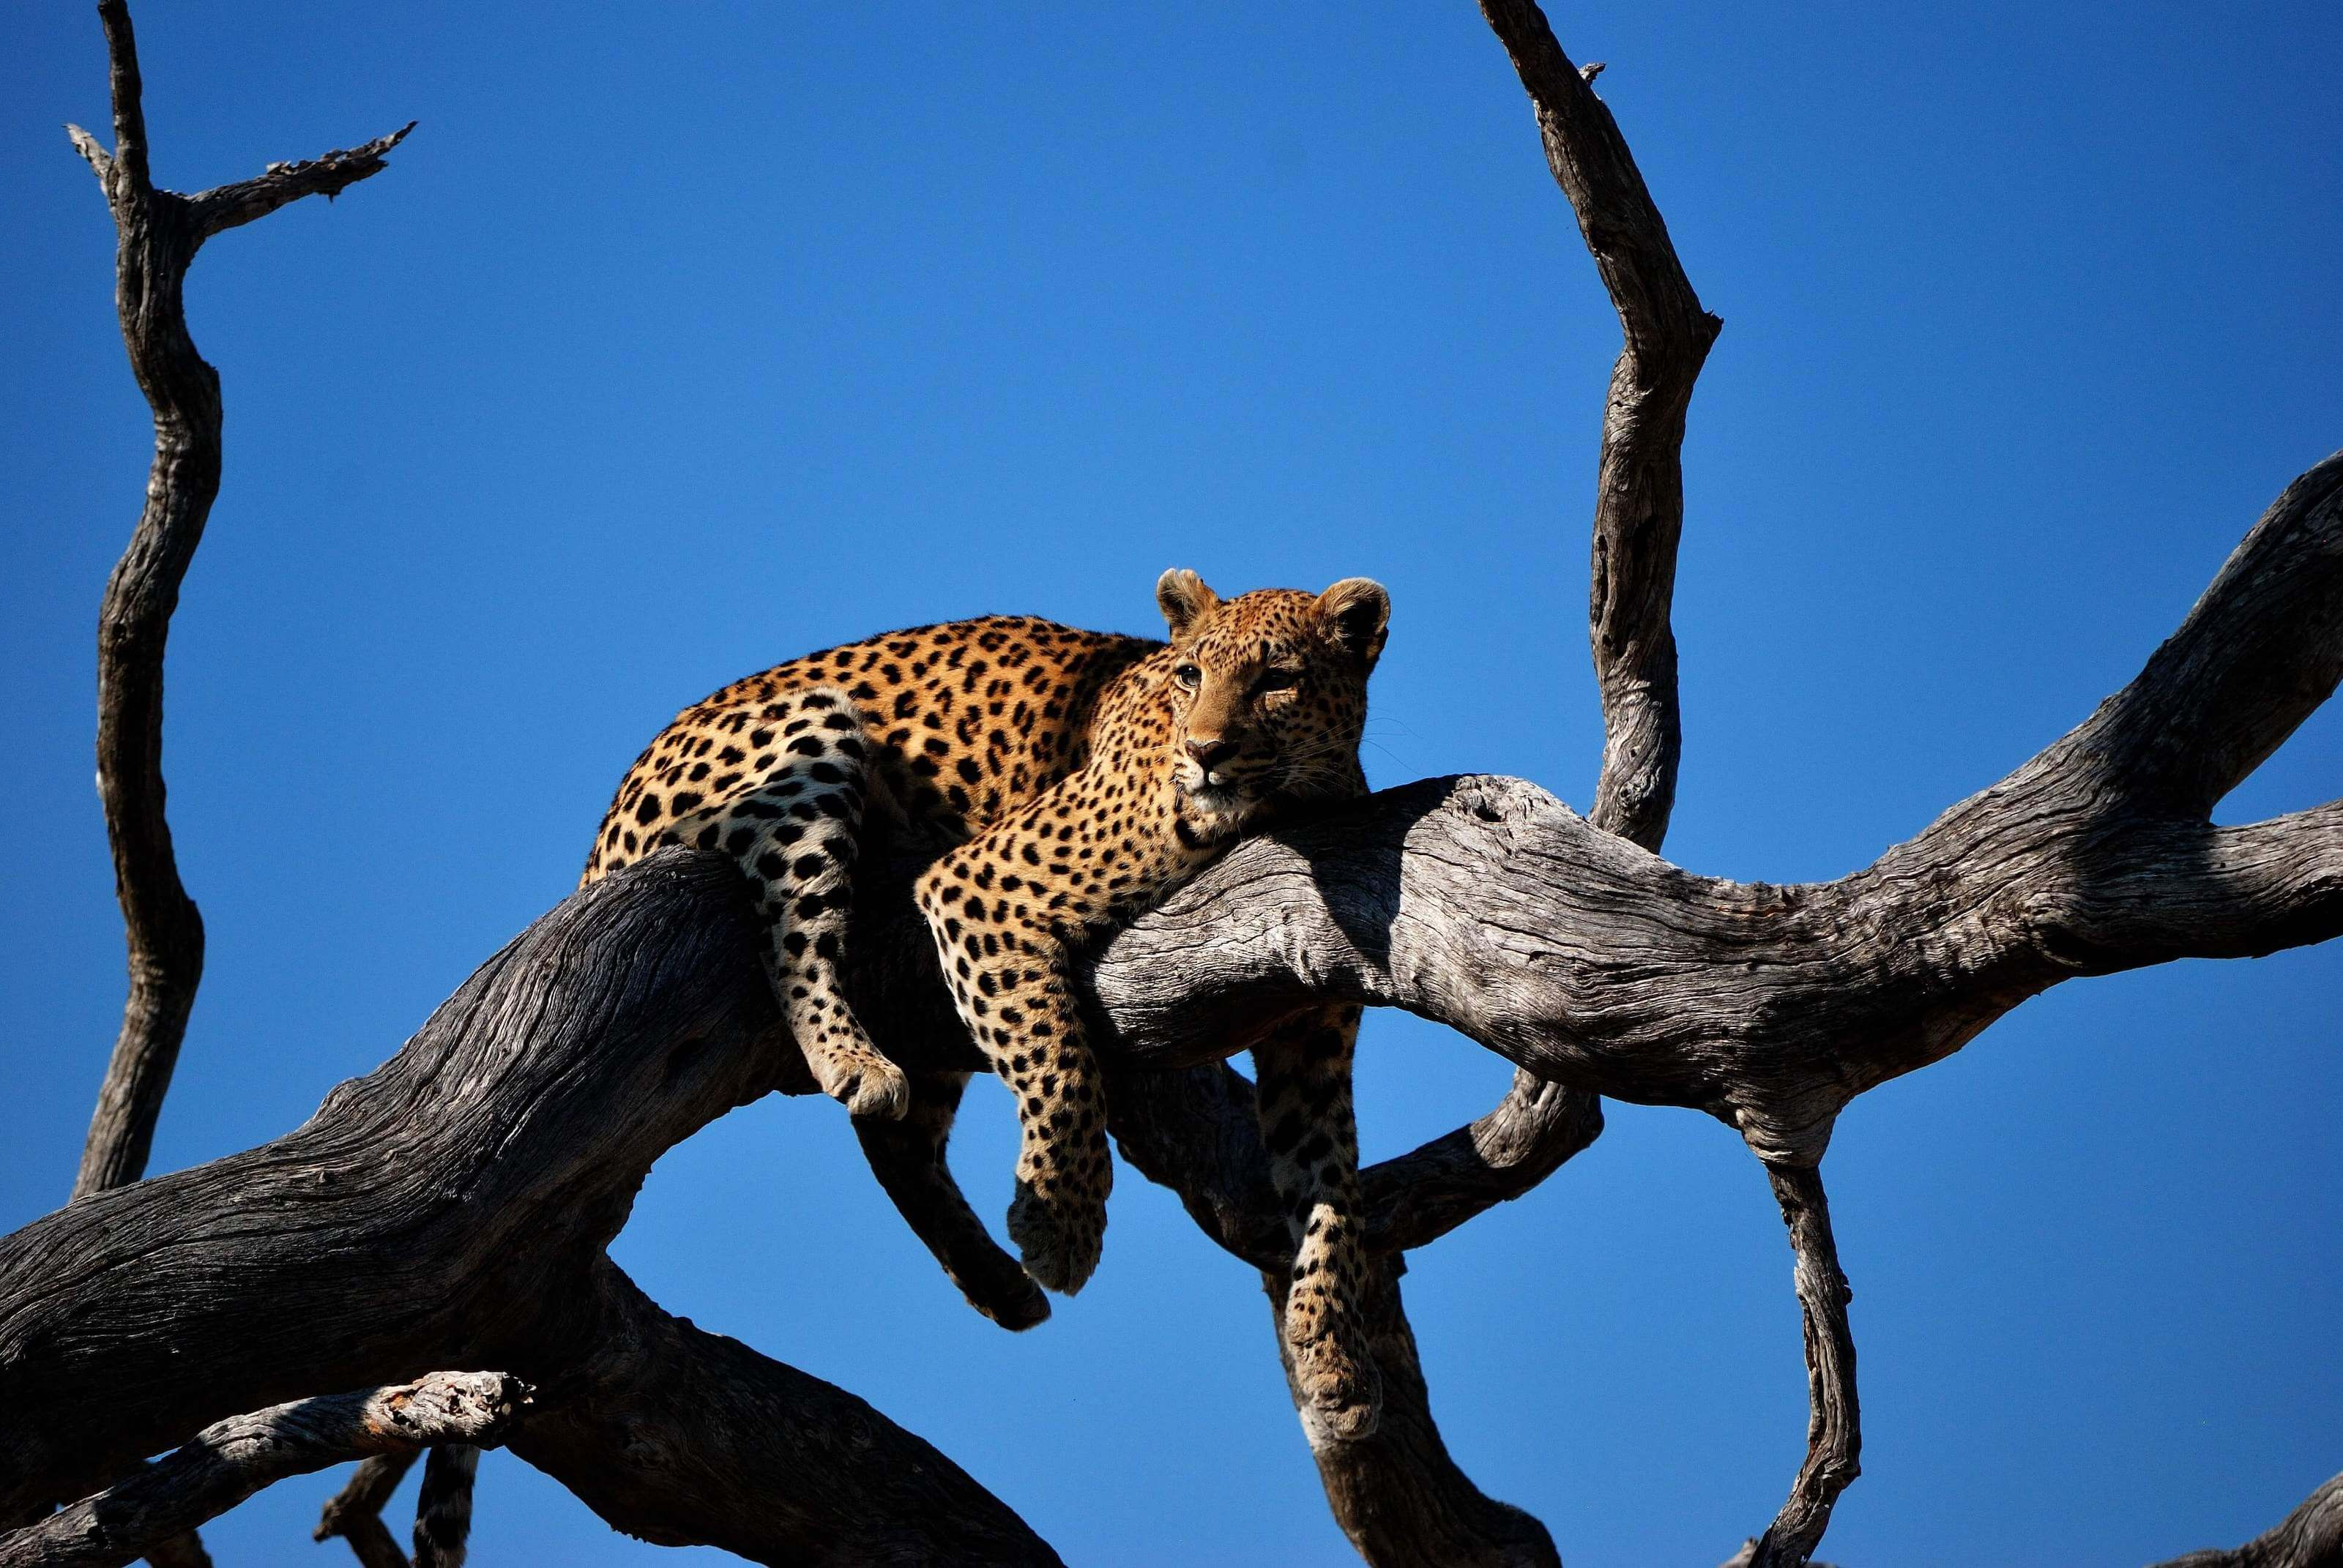 A lazy leopard relaxing on a tree